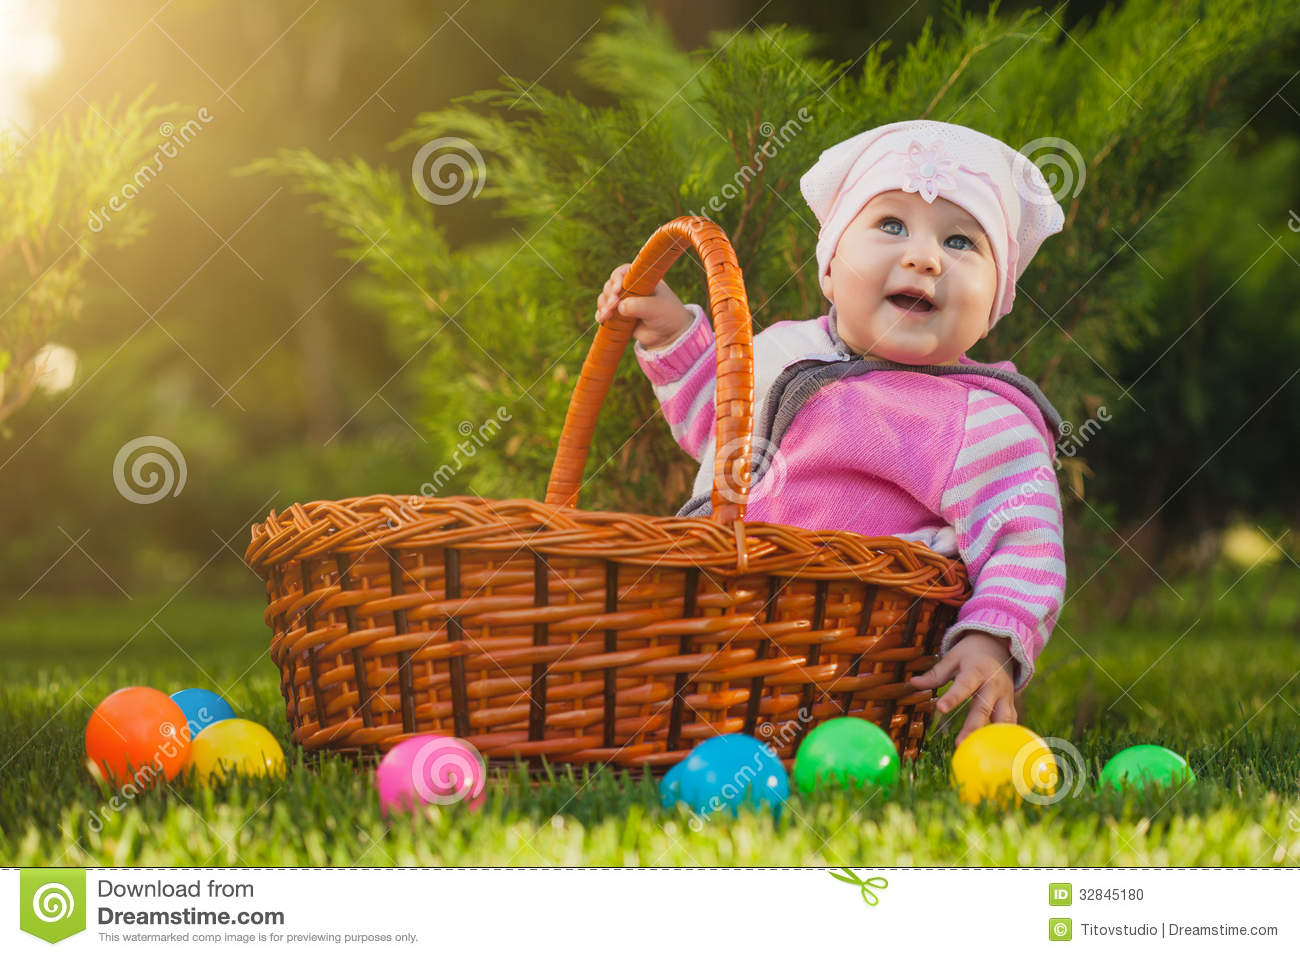 Cute baby in basket in the green park